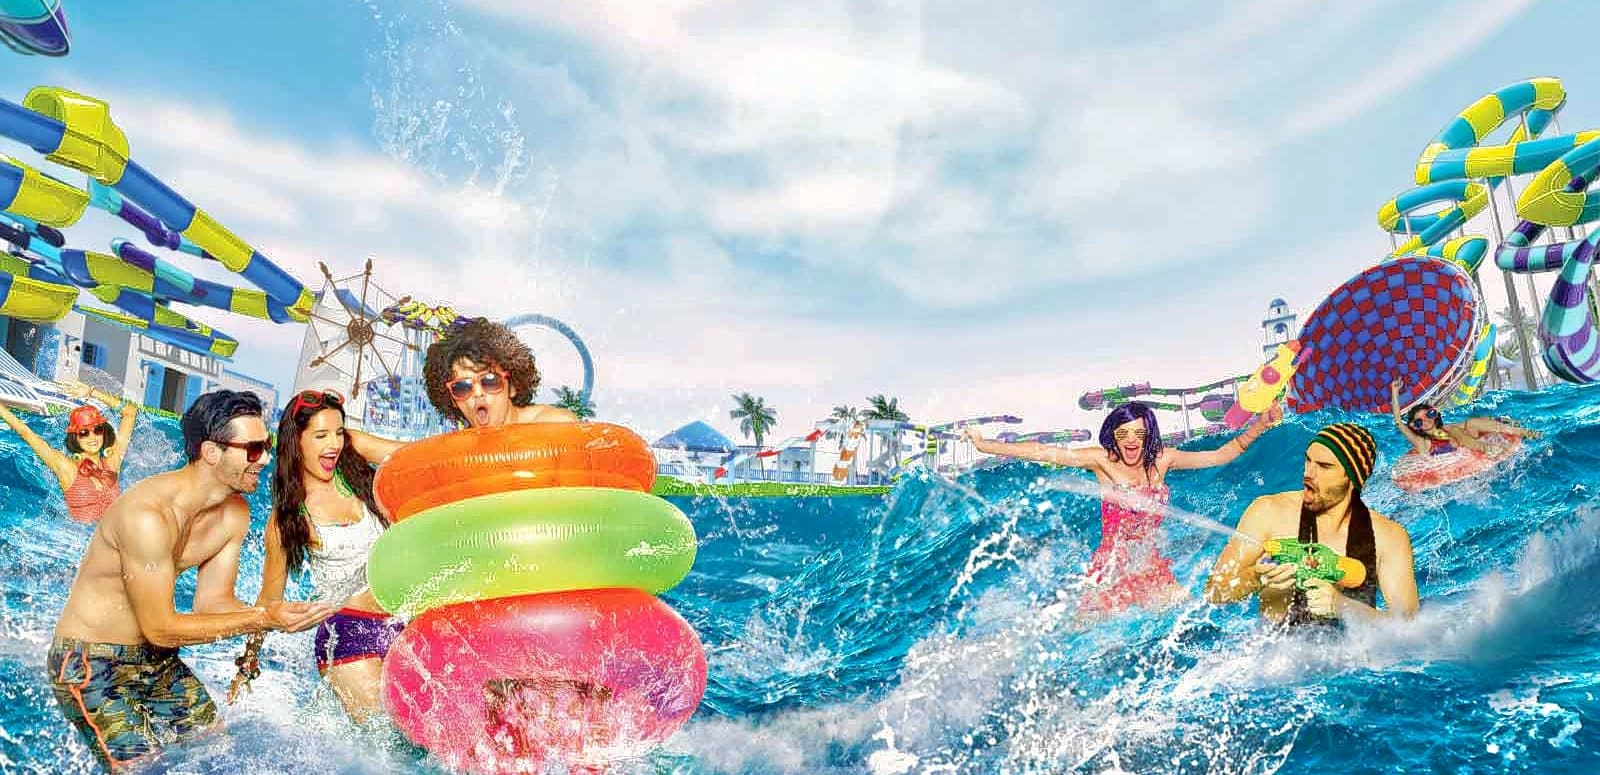 Picnic world water park video